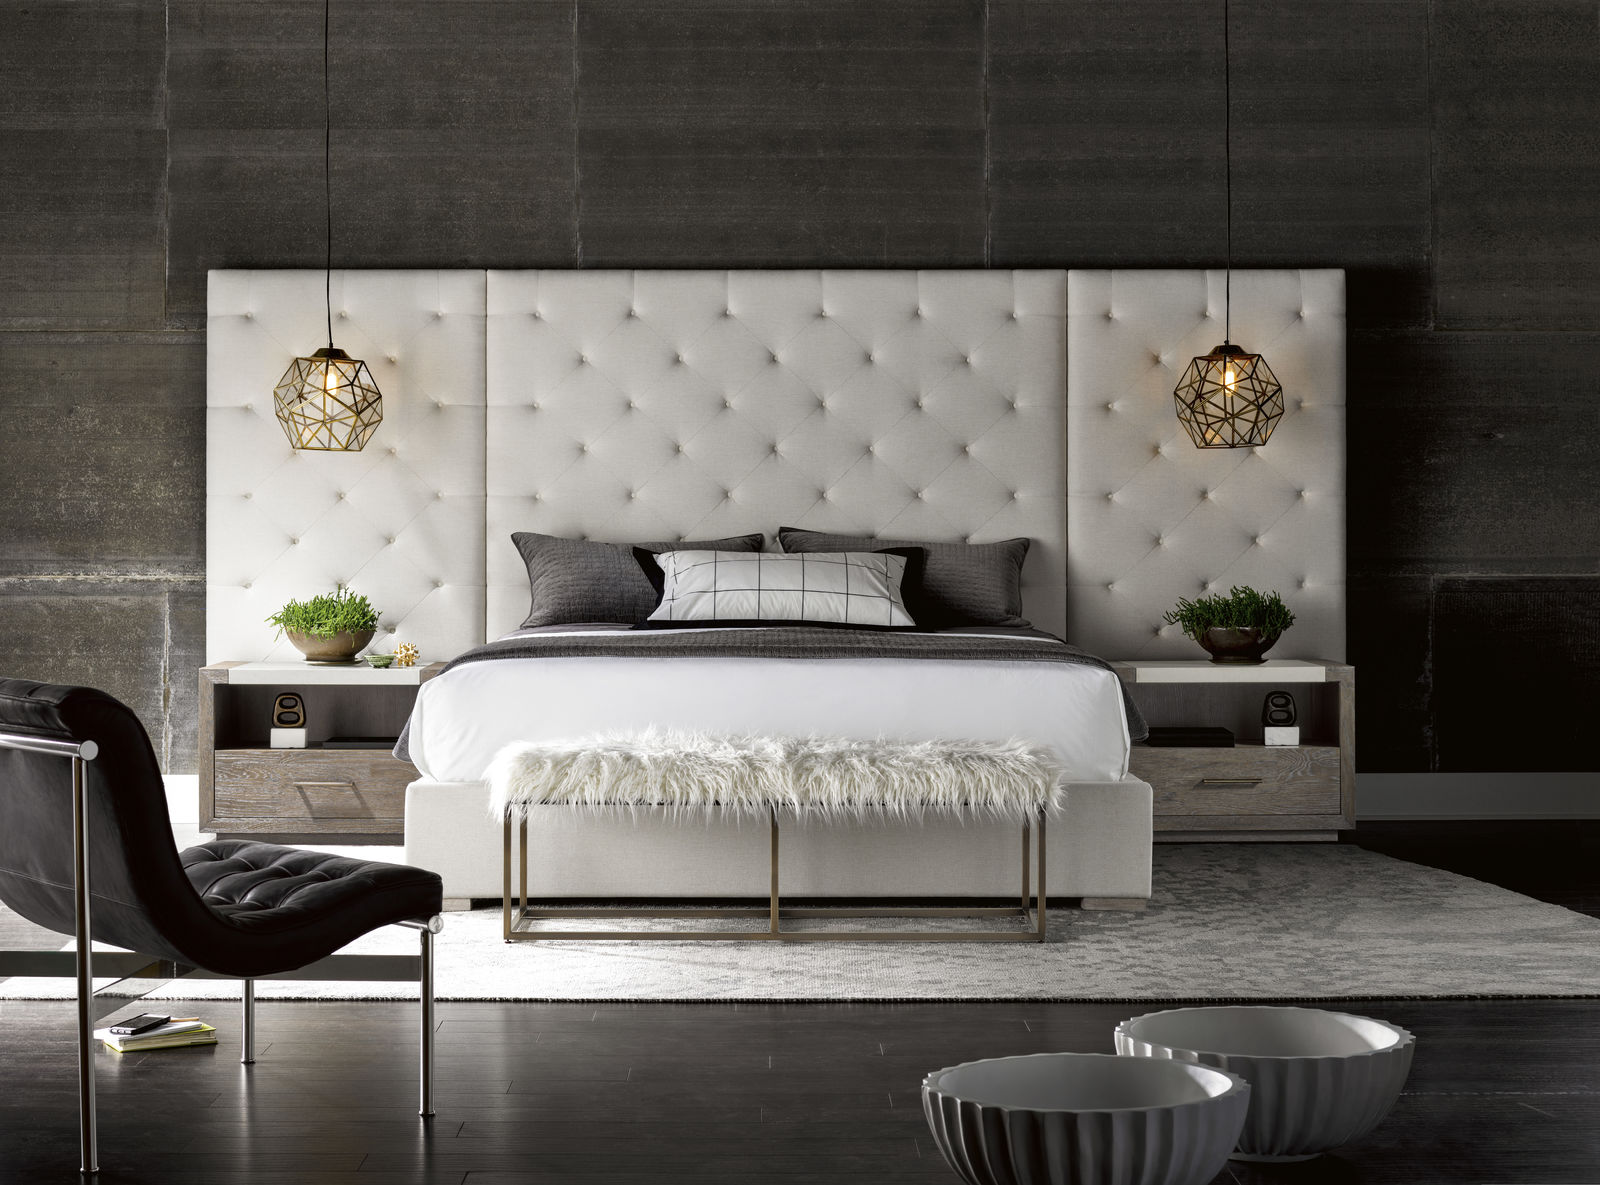 White upholstered bed with gold pendant lights, nightstands and a bench